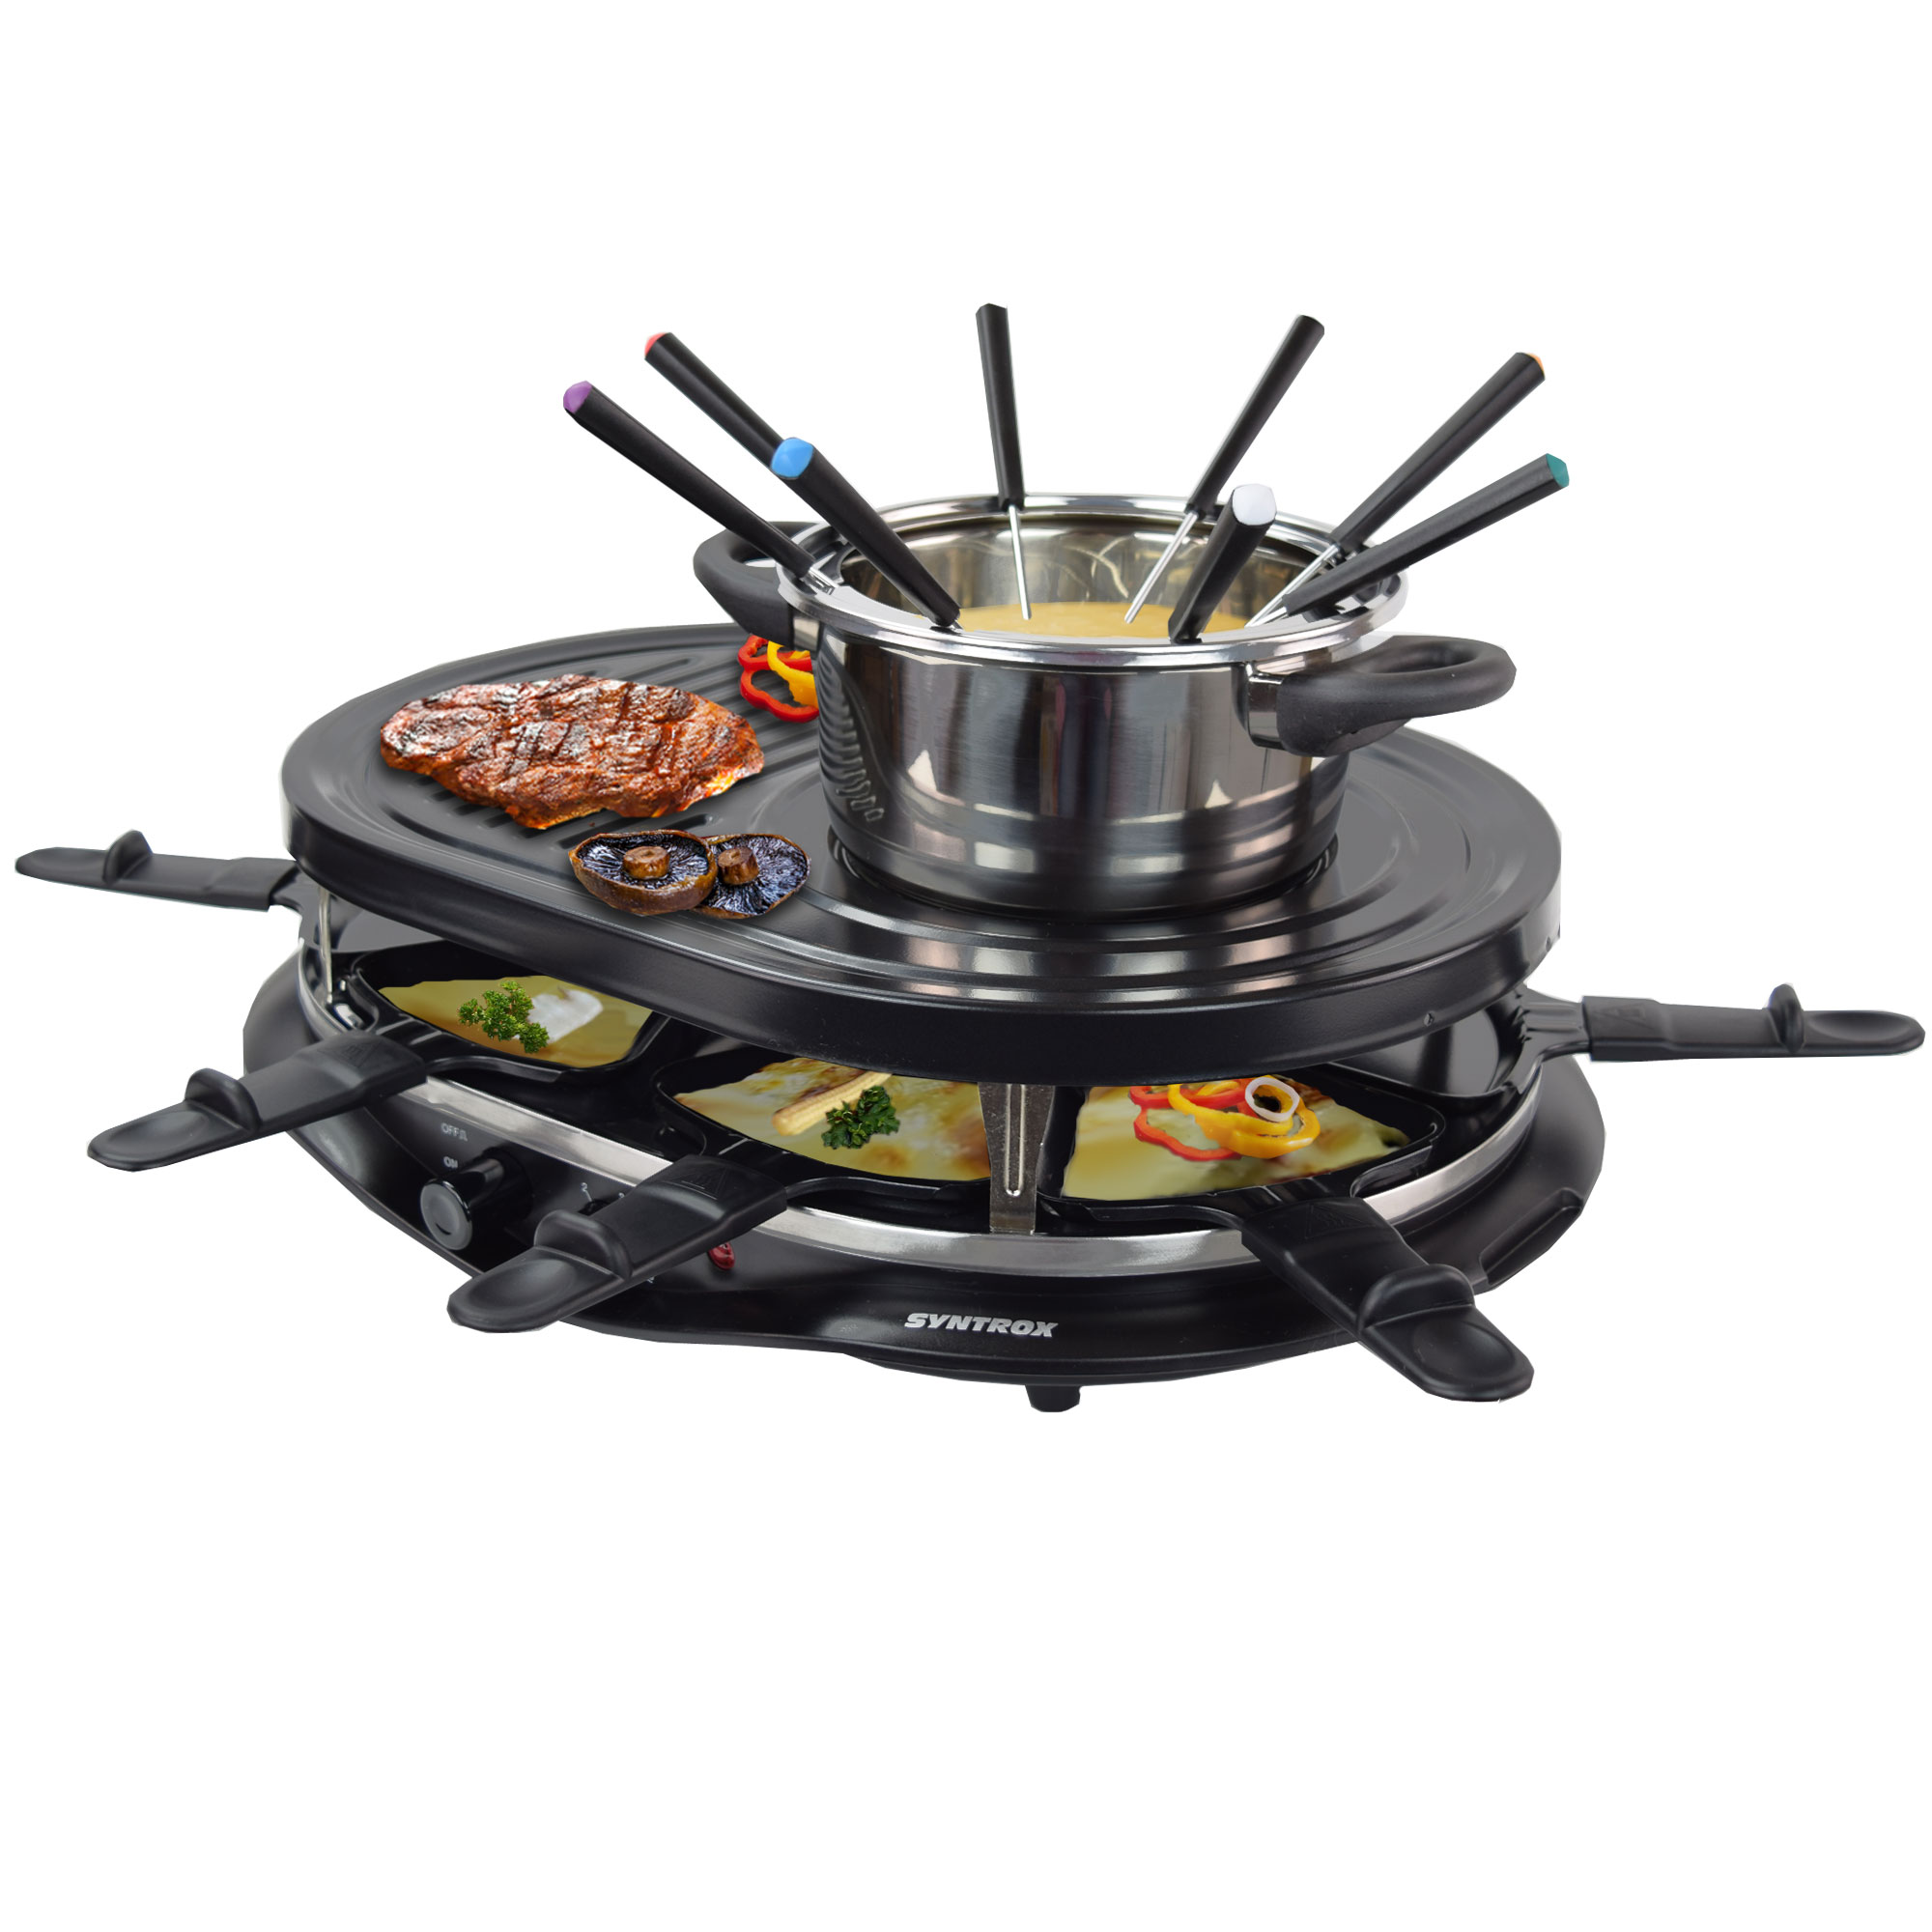 4 in 1 raclette grill heisser stein fondue f r 8 personen syntrox ebay. Black Bedroom Furniture Sets. Home Design Ideas